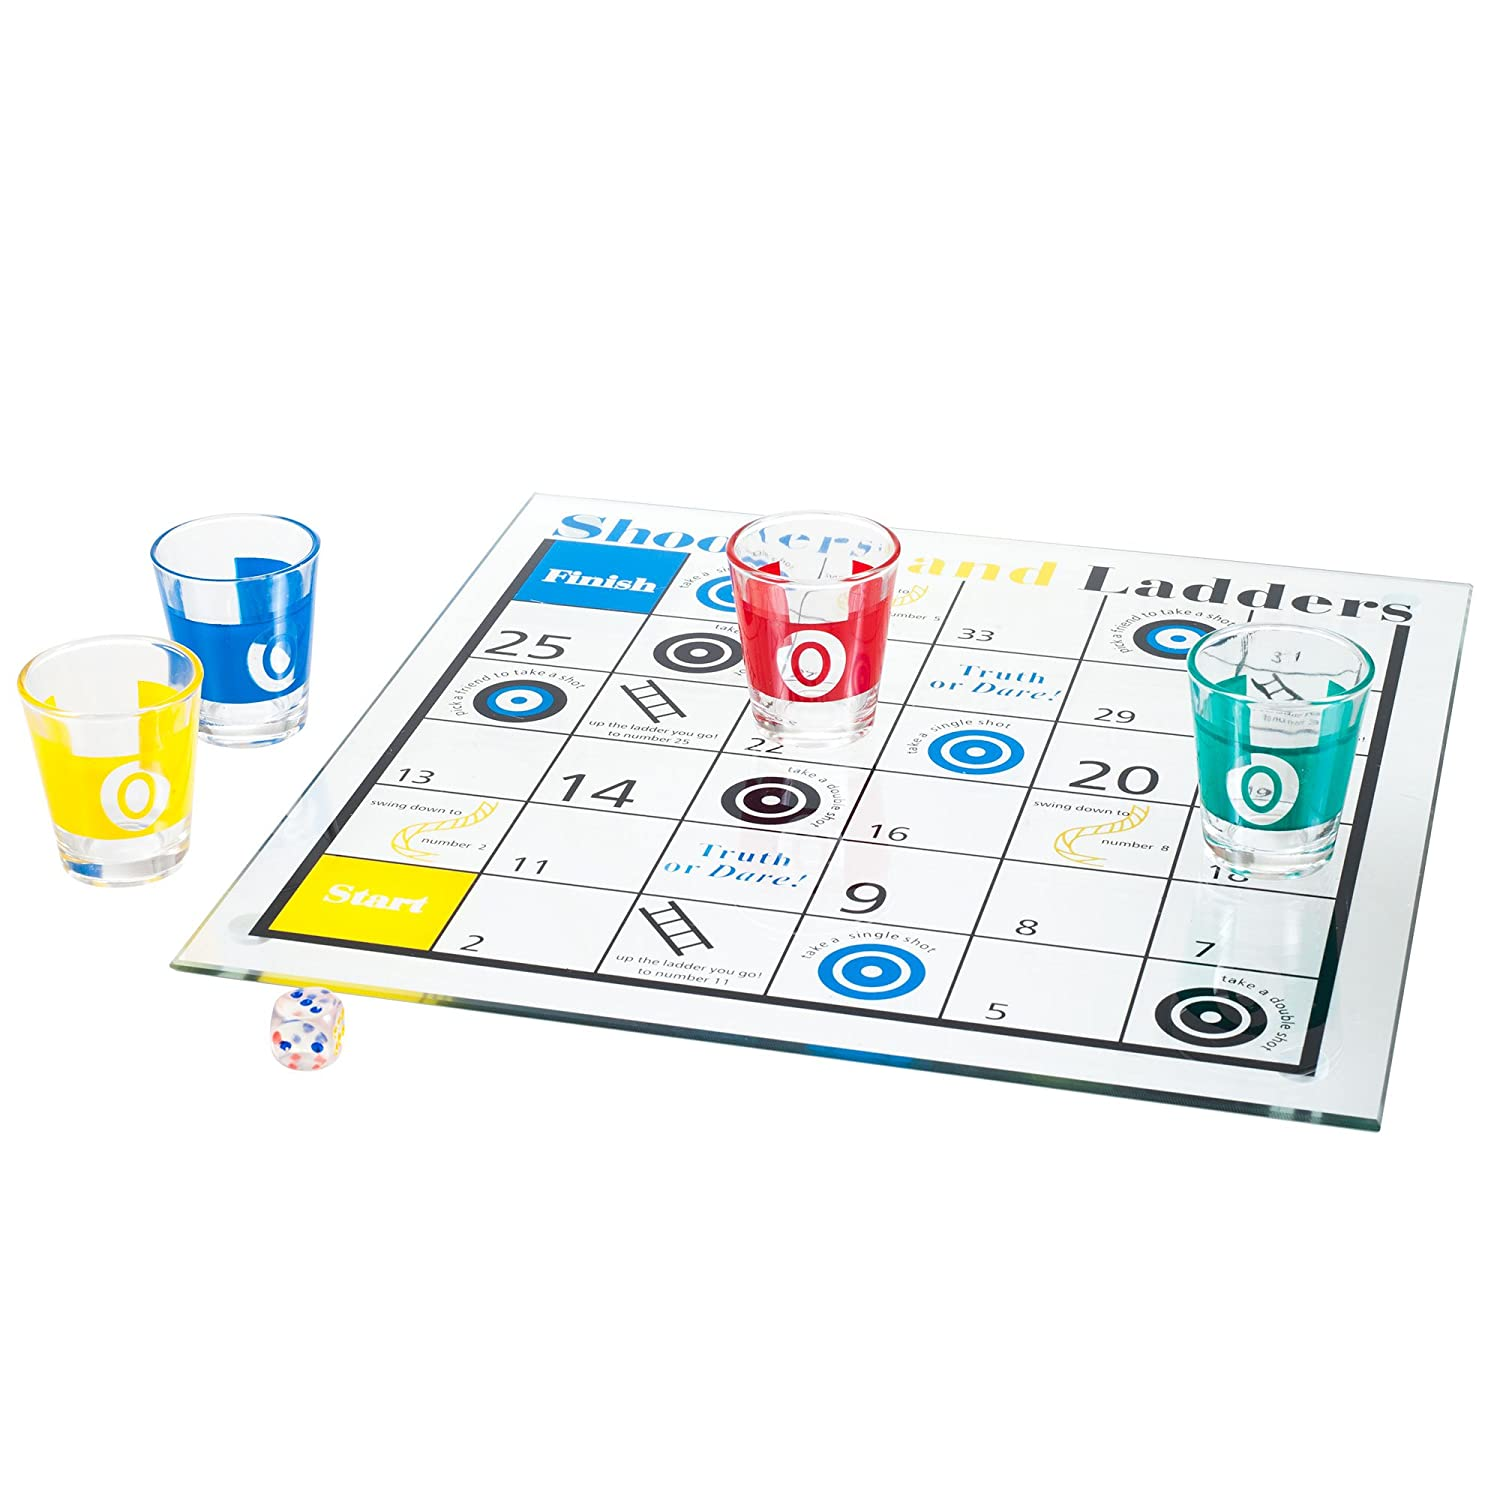 Shooters & Ladders Drinking Game Set Trademark GLB 80-GC069A